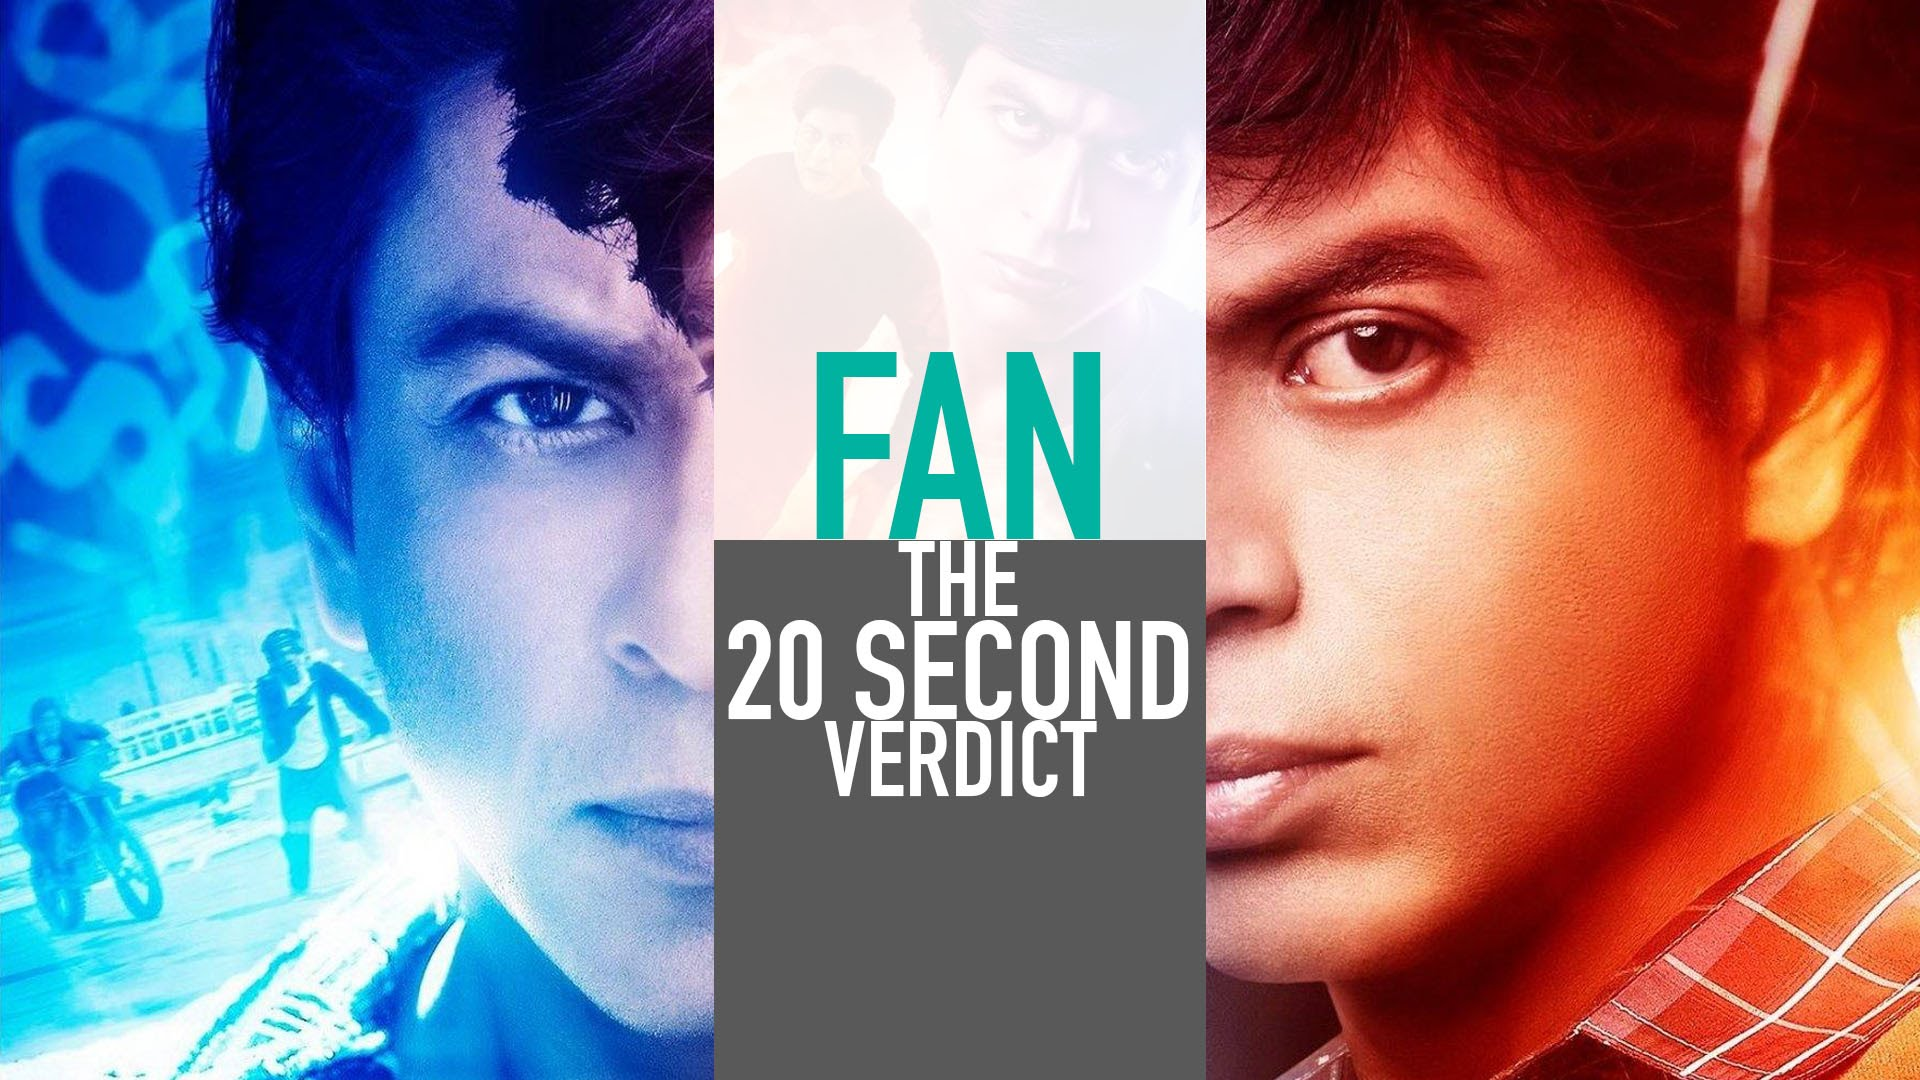 Fan Hit or Flop- Shah Rukh Khan Fan Movie Verdict